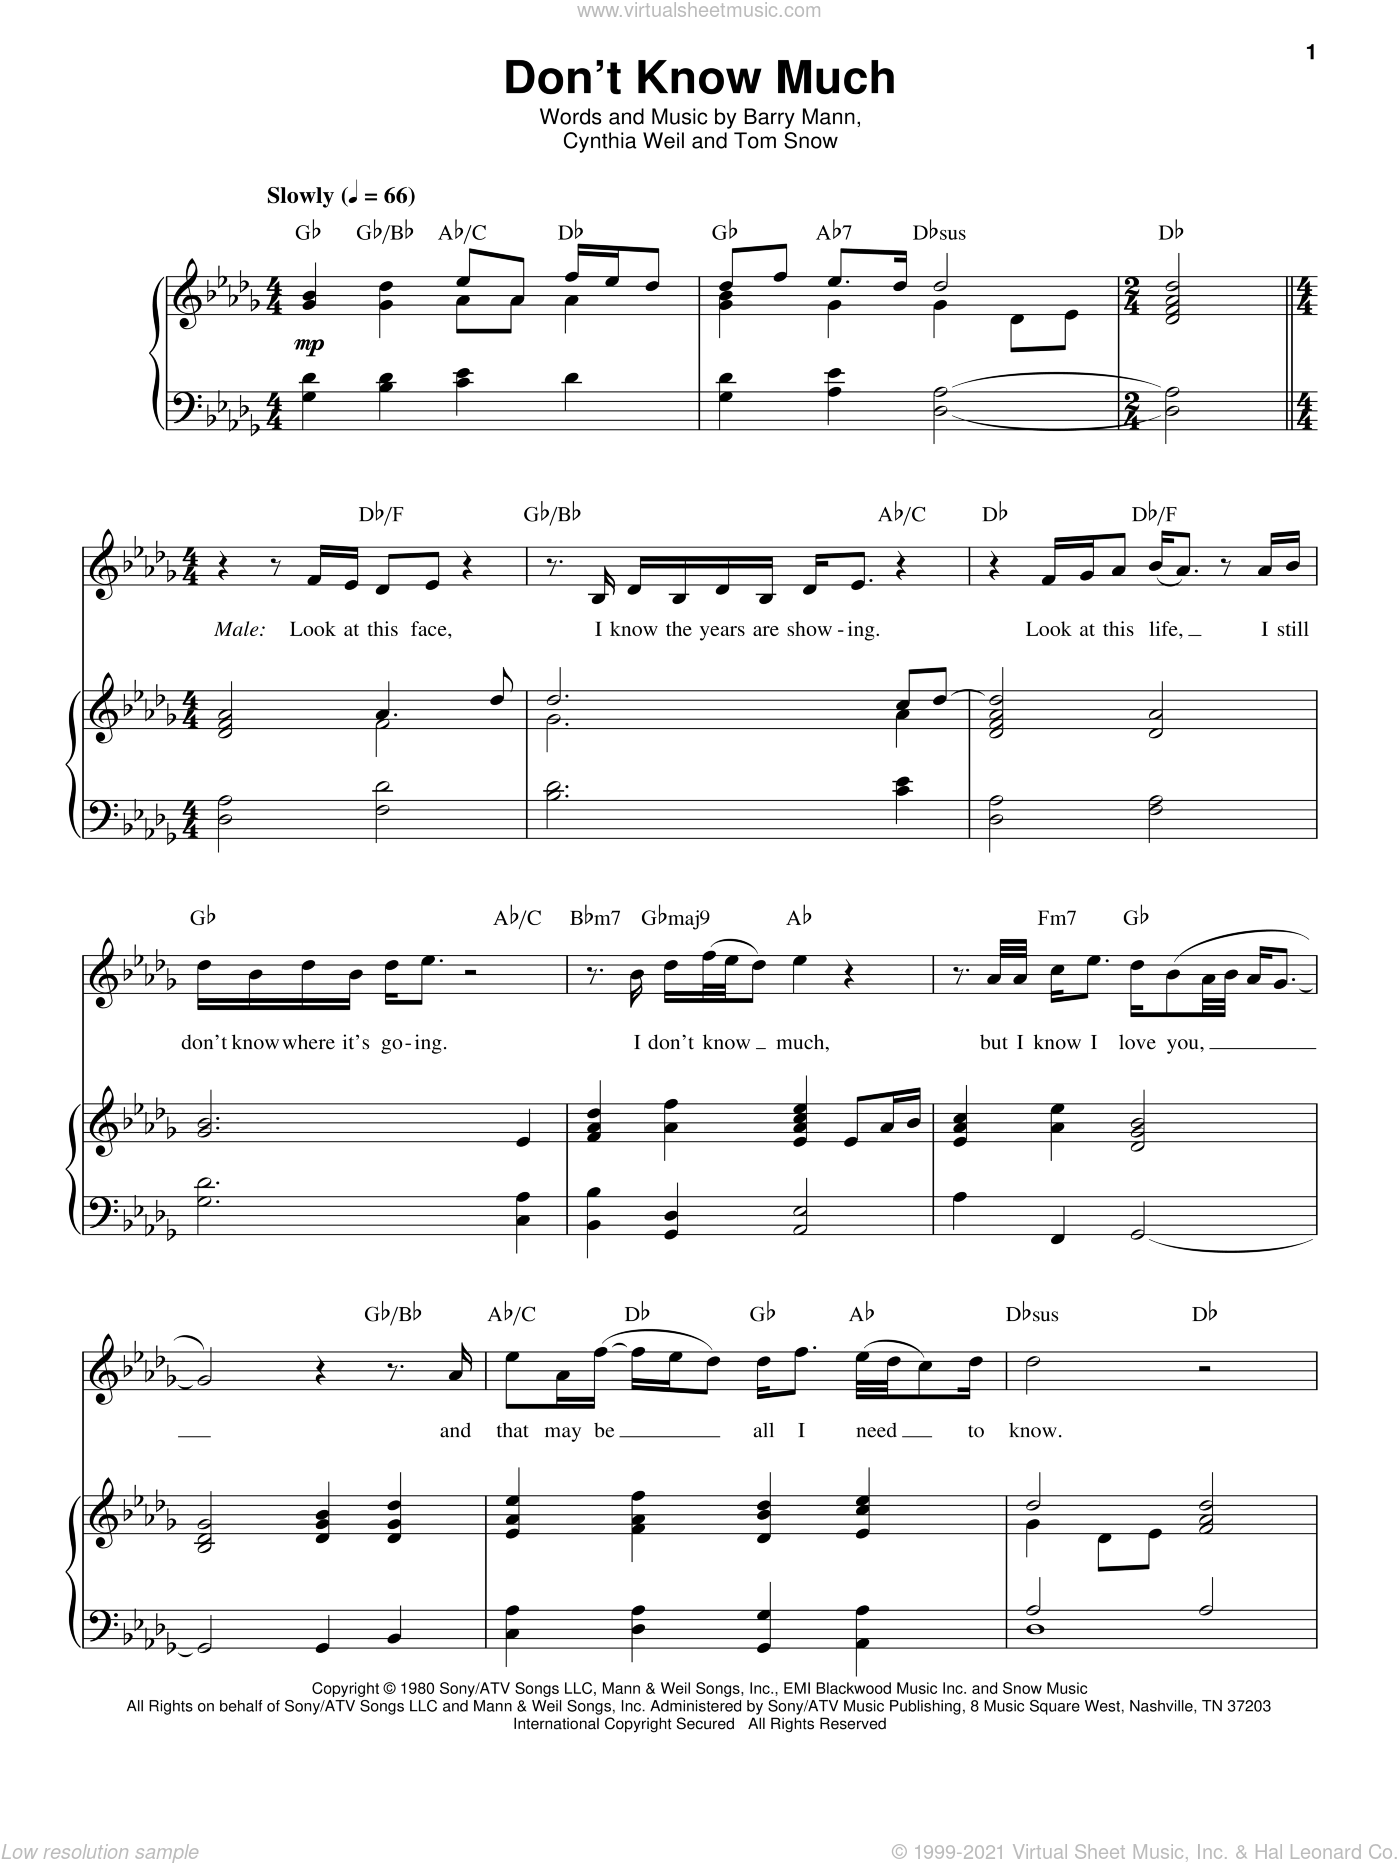 Don't Know Much sheet music for voice and piano by Tom Snow